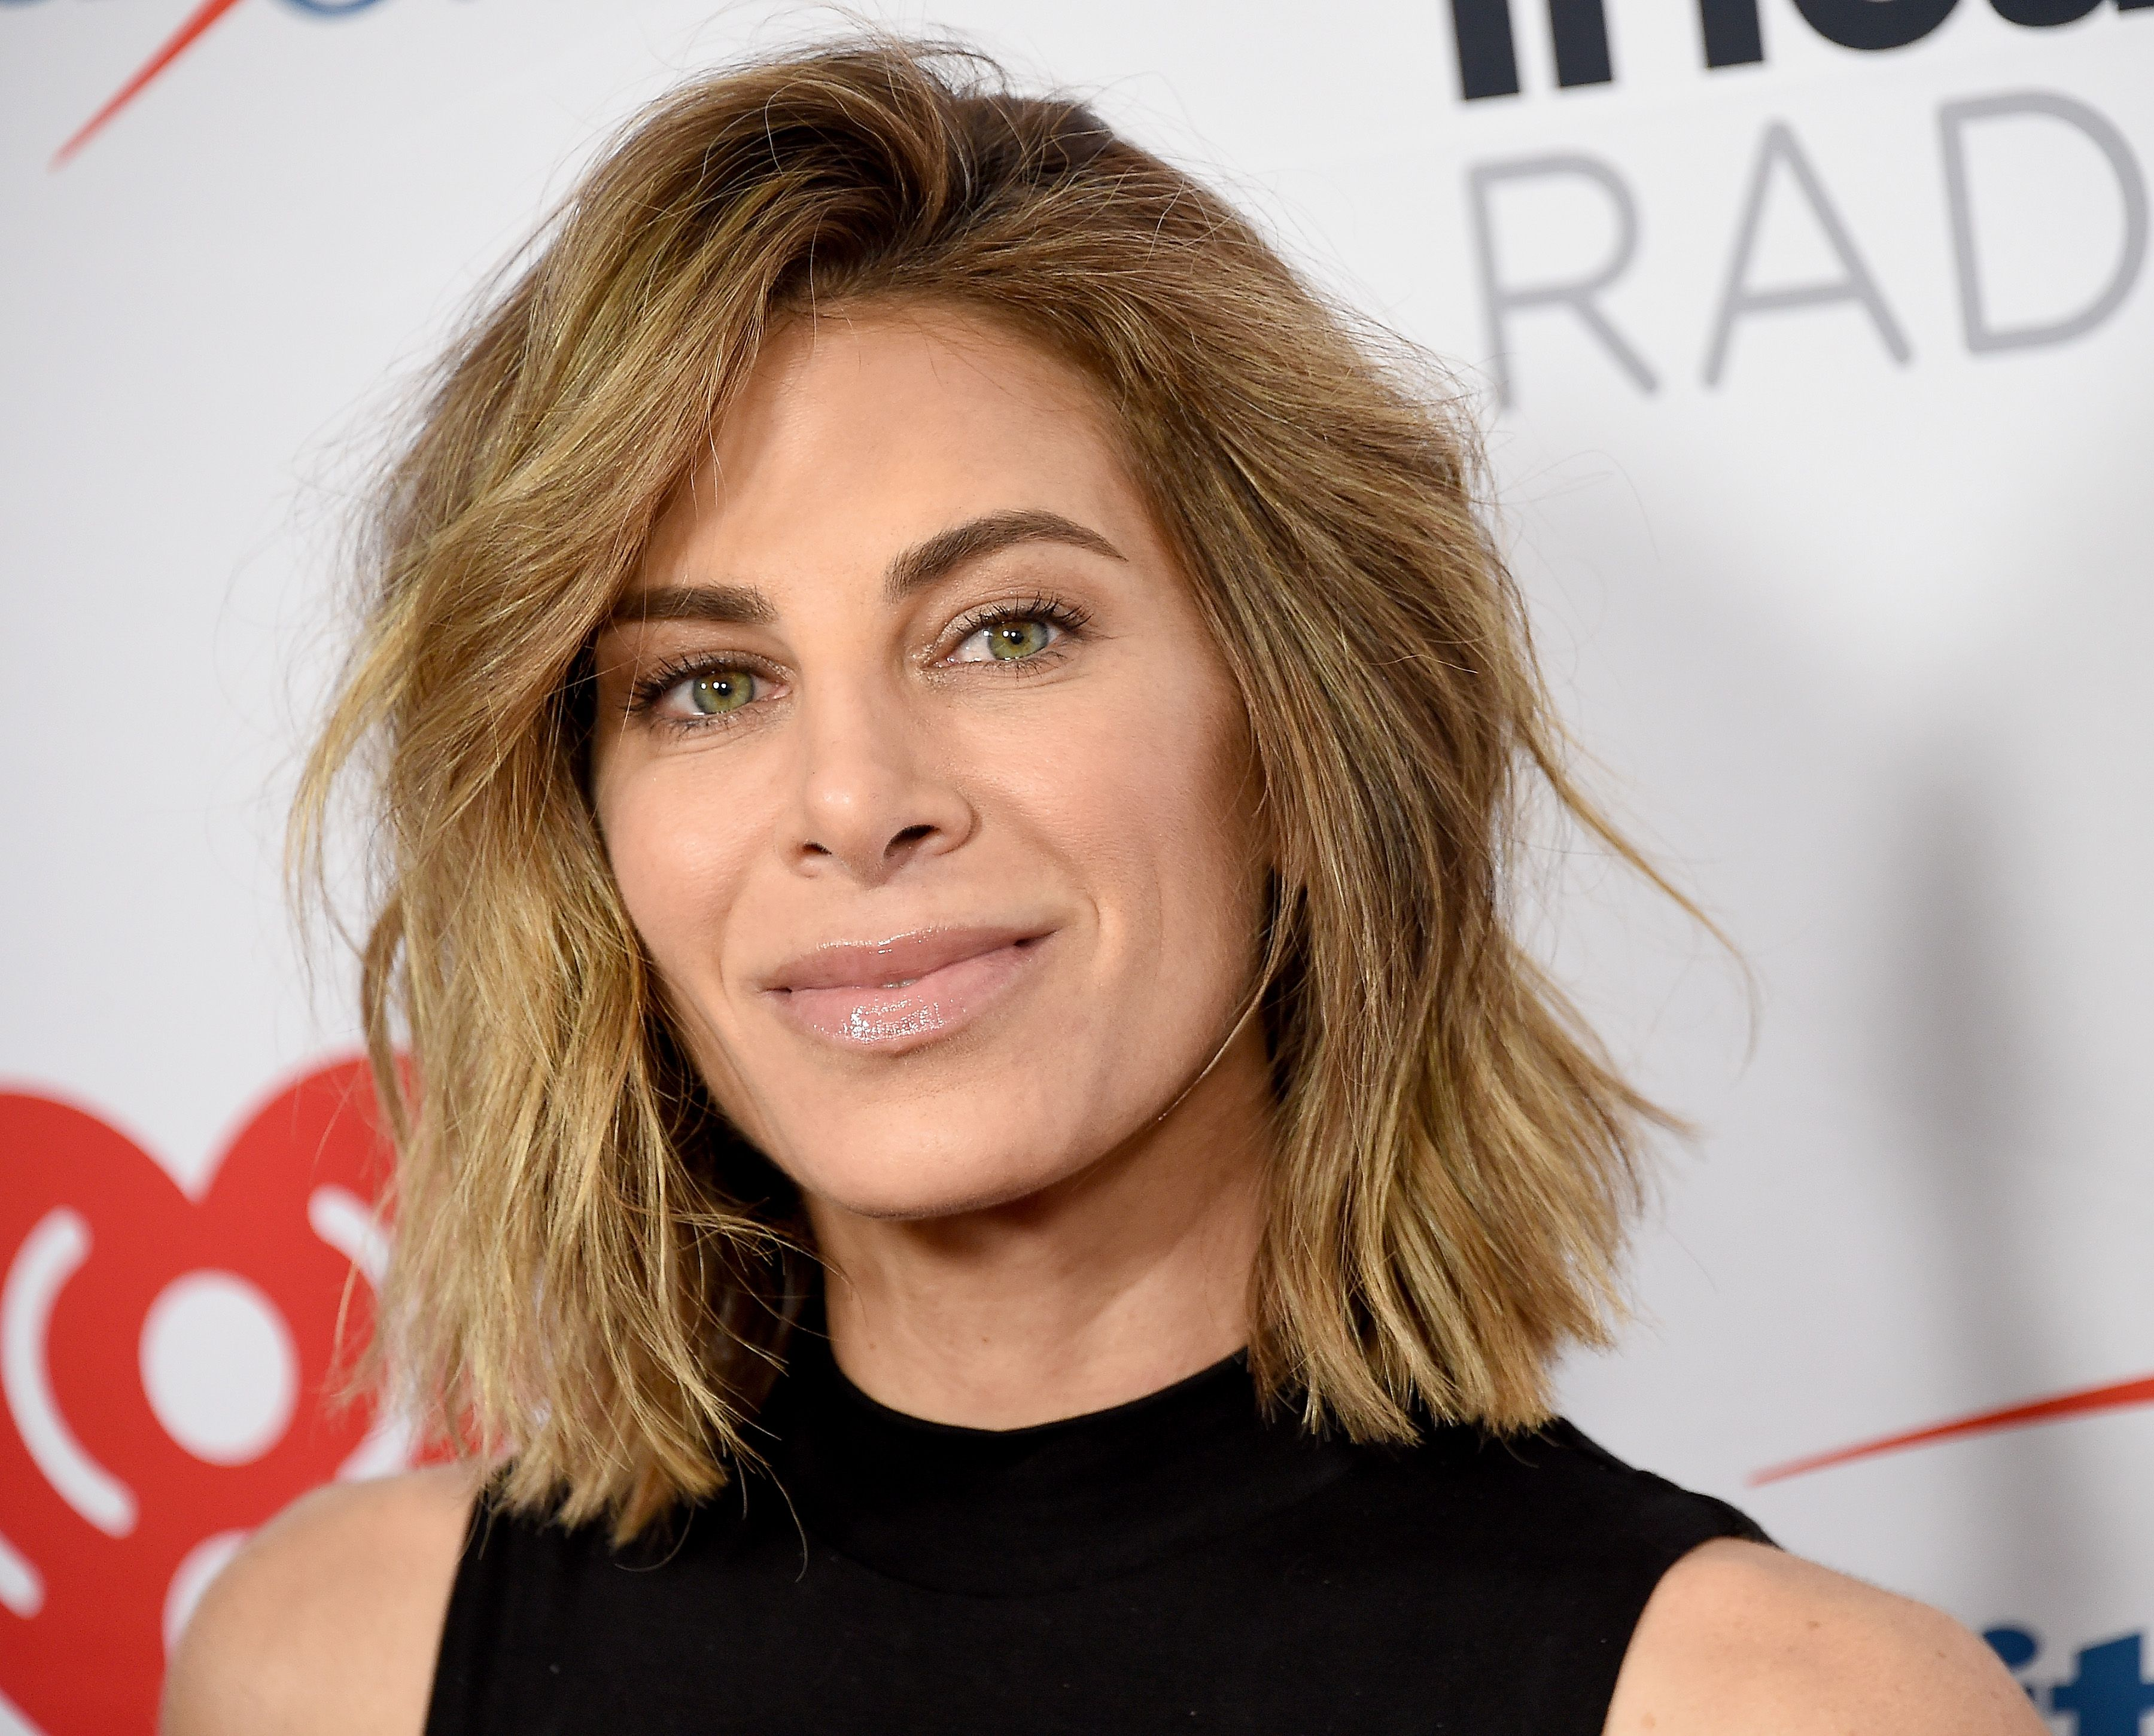 Jillian Michaels Says Intermittent Fasting Won't Help You Lose Weight In New IGTV Video